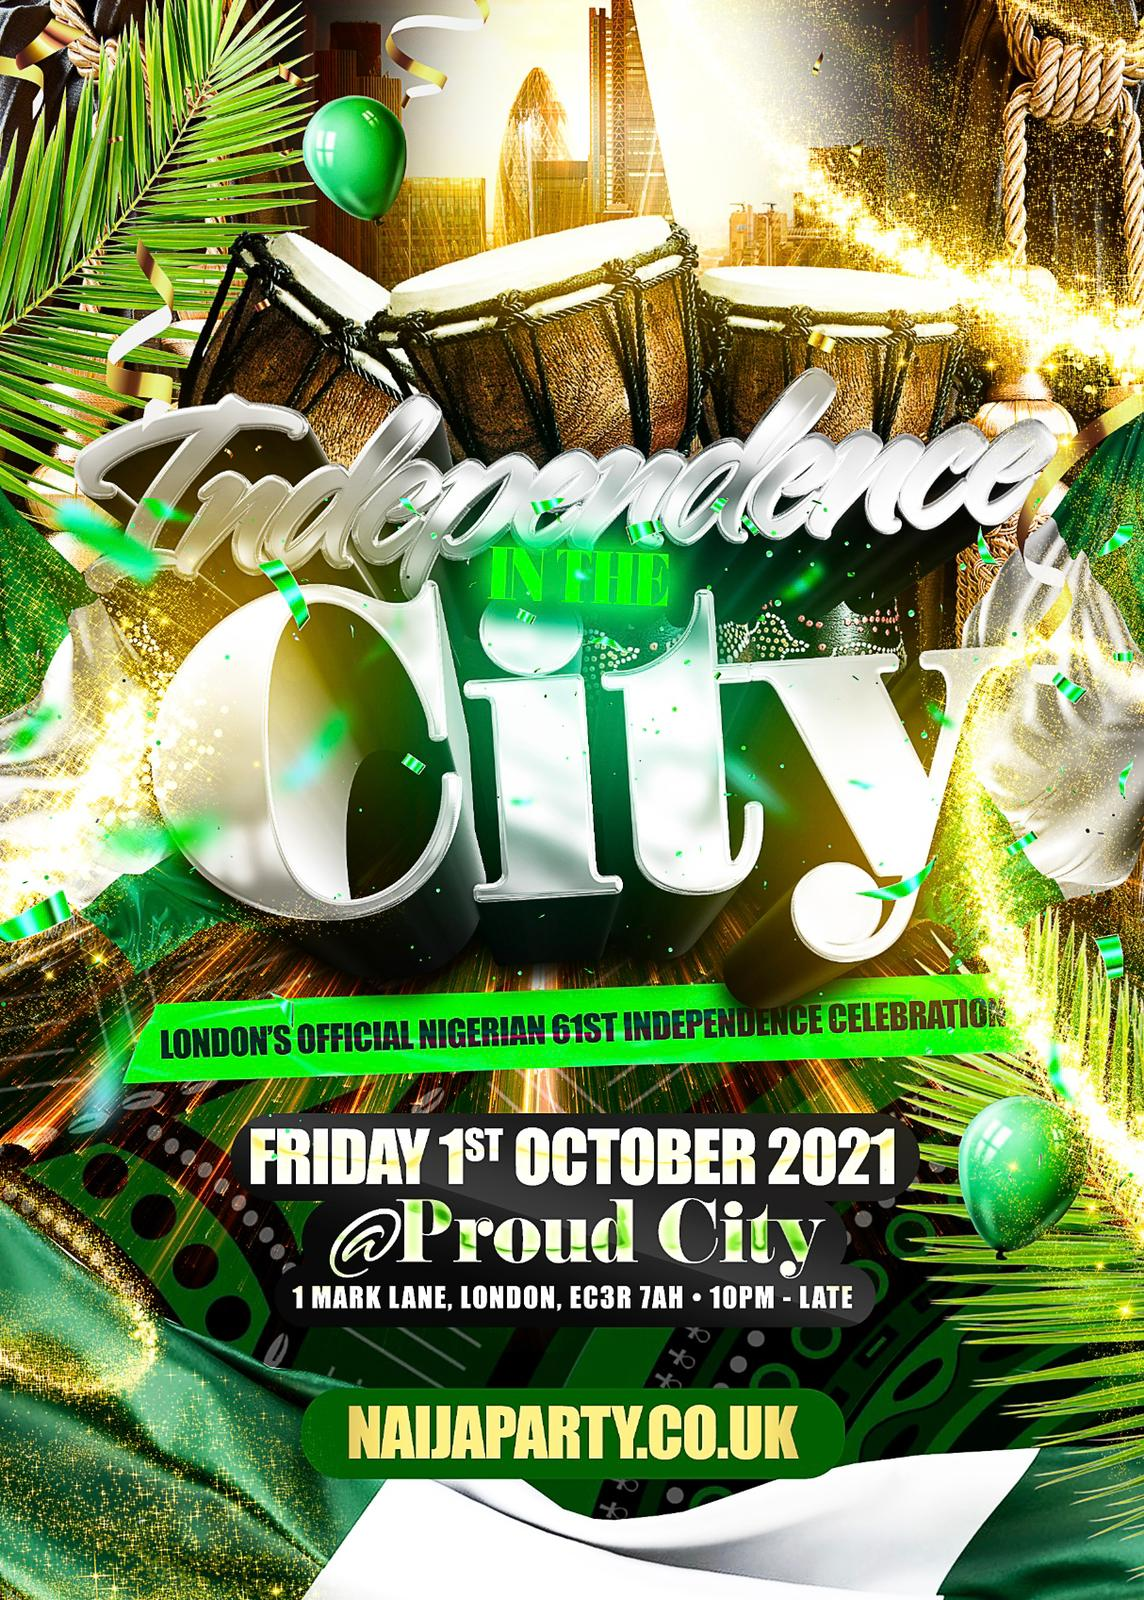 INDEPENDENCE IN THE CITY: OFFICIAL NIGERIAN INDEPENDENCE PARTY!